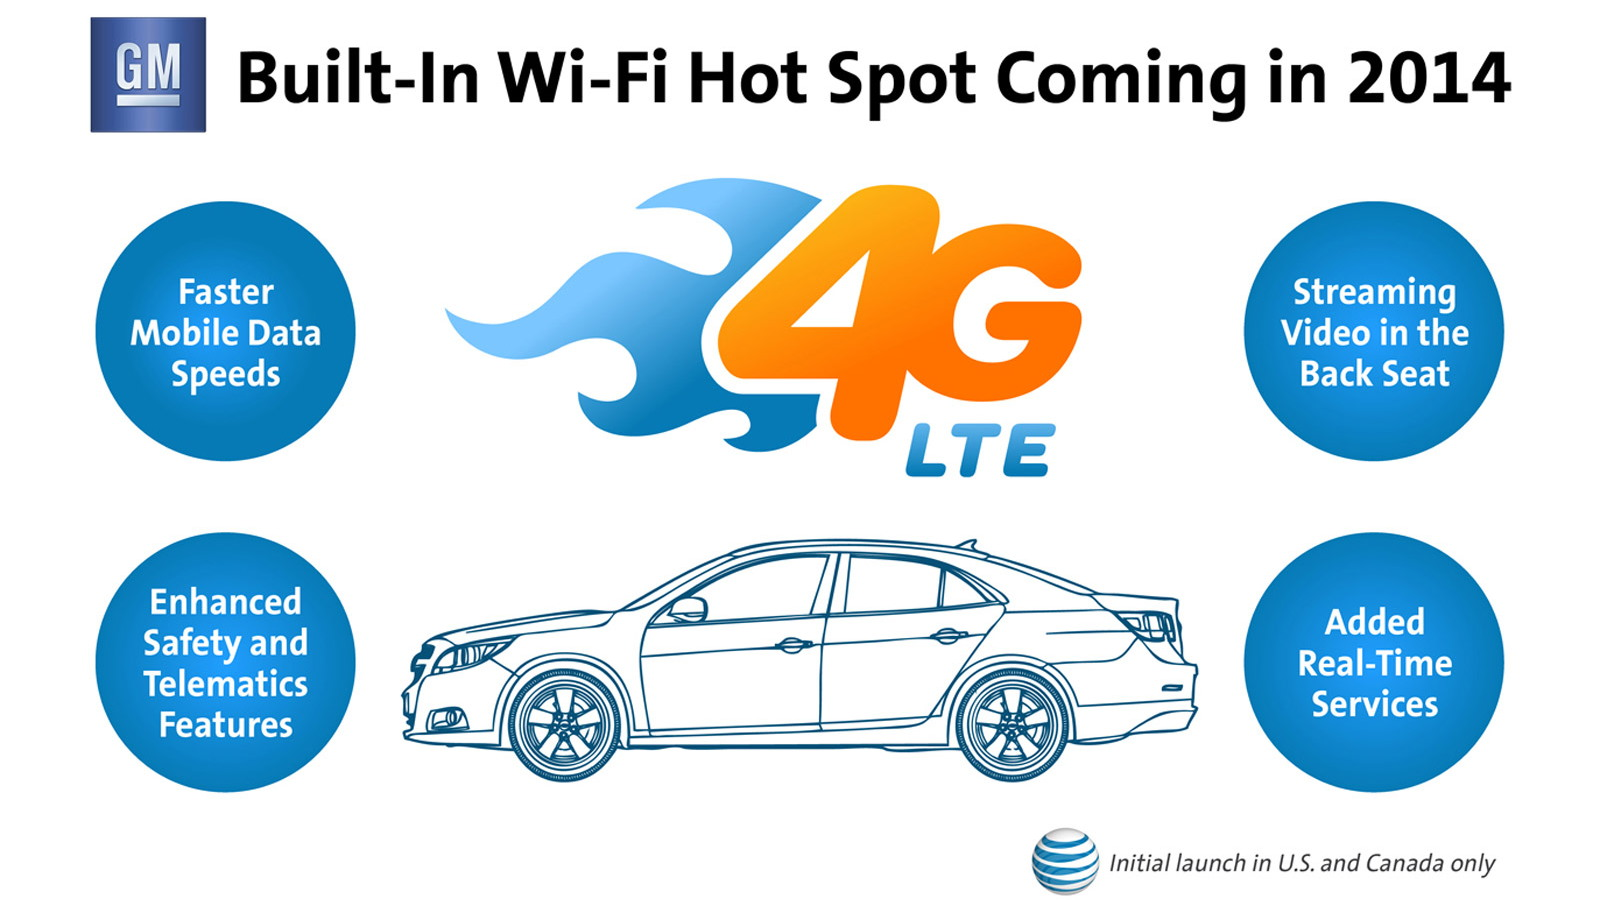 Most GM models will offer 4G LTE mobile broadband from 2014 onwards